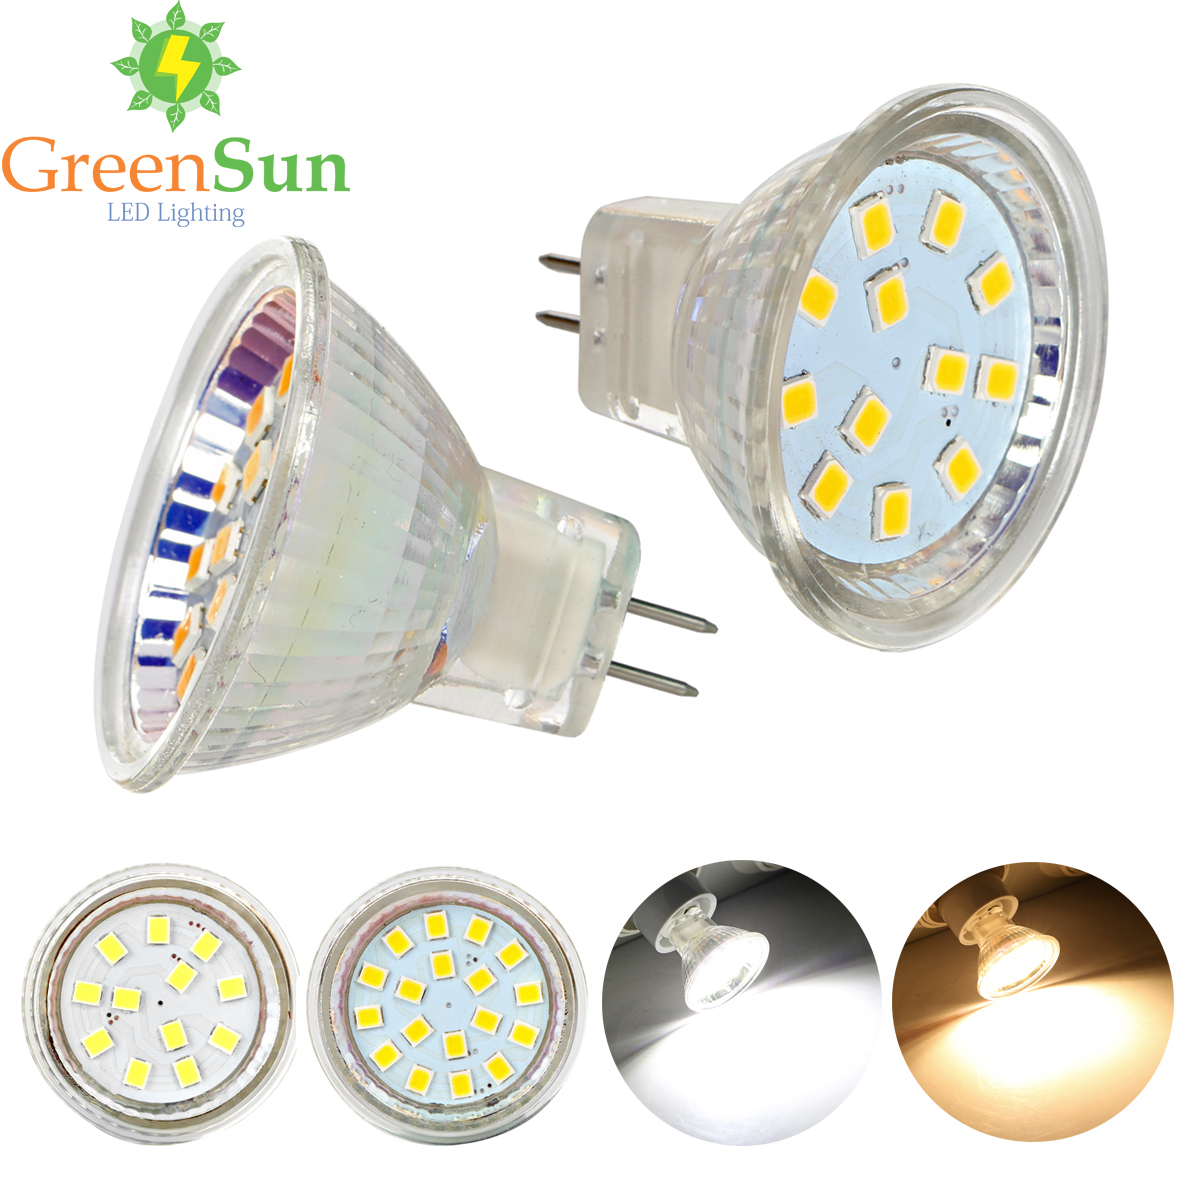 MR11 GU4 2835 SMD Led Spotlight 3W 5W LED Lamp Bulb Energy Saving Led Spot Light Bulb Cool/Warm White AC/DC 12-30V